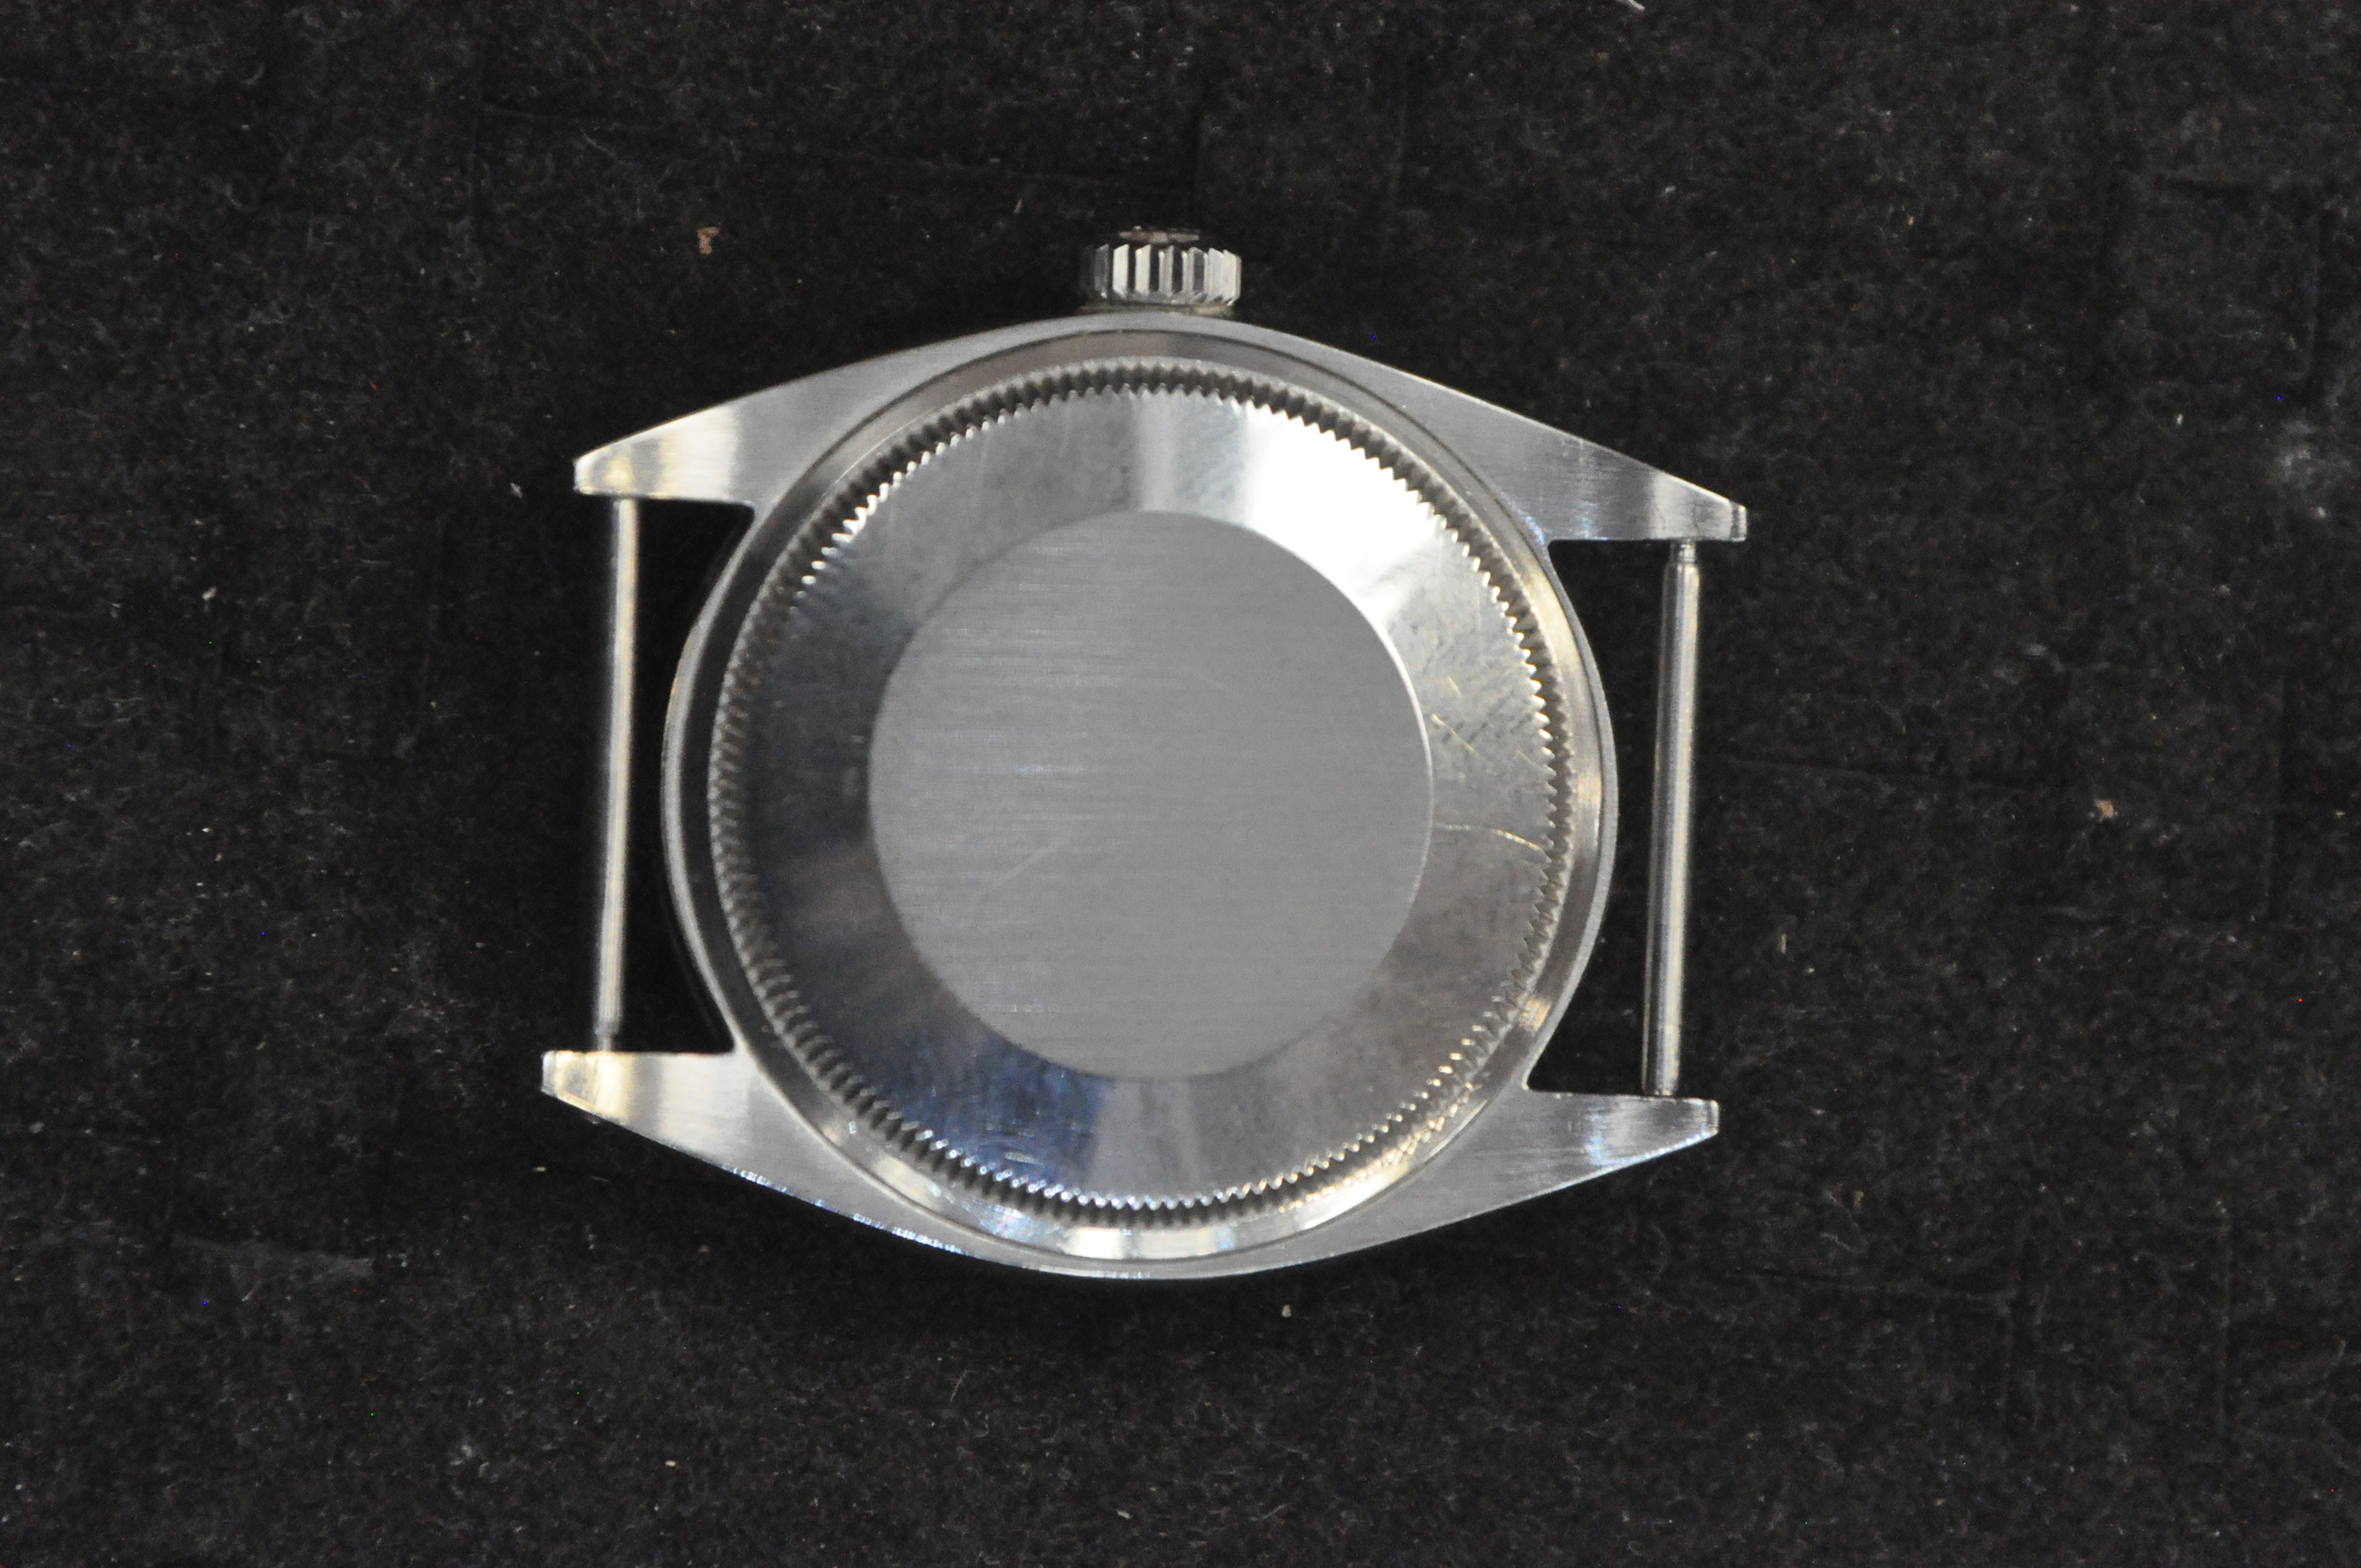 A stainless steel rolex oyster perpetual air king date wristwatch. - Image 5 of 11